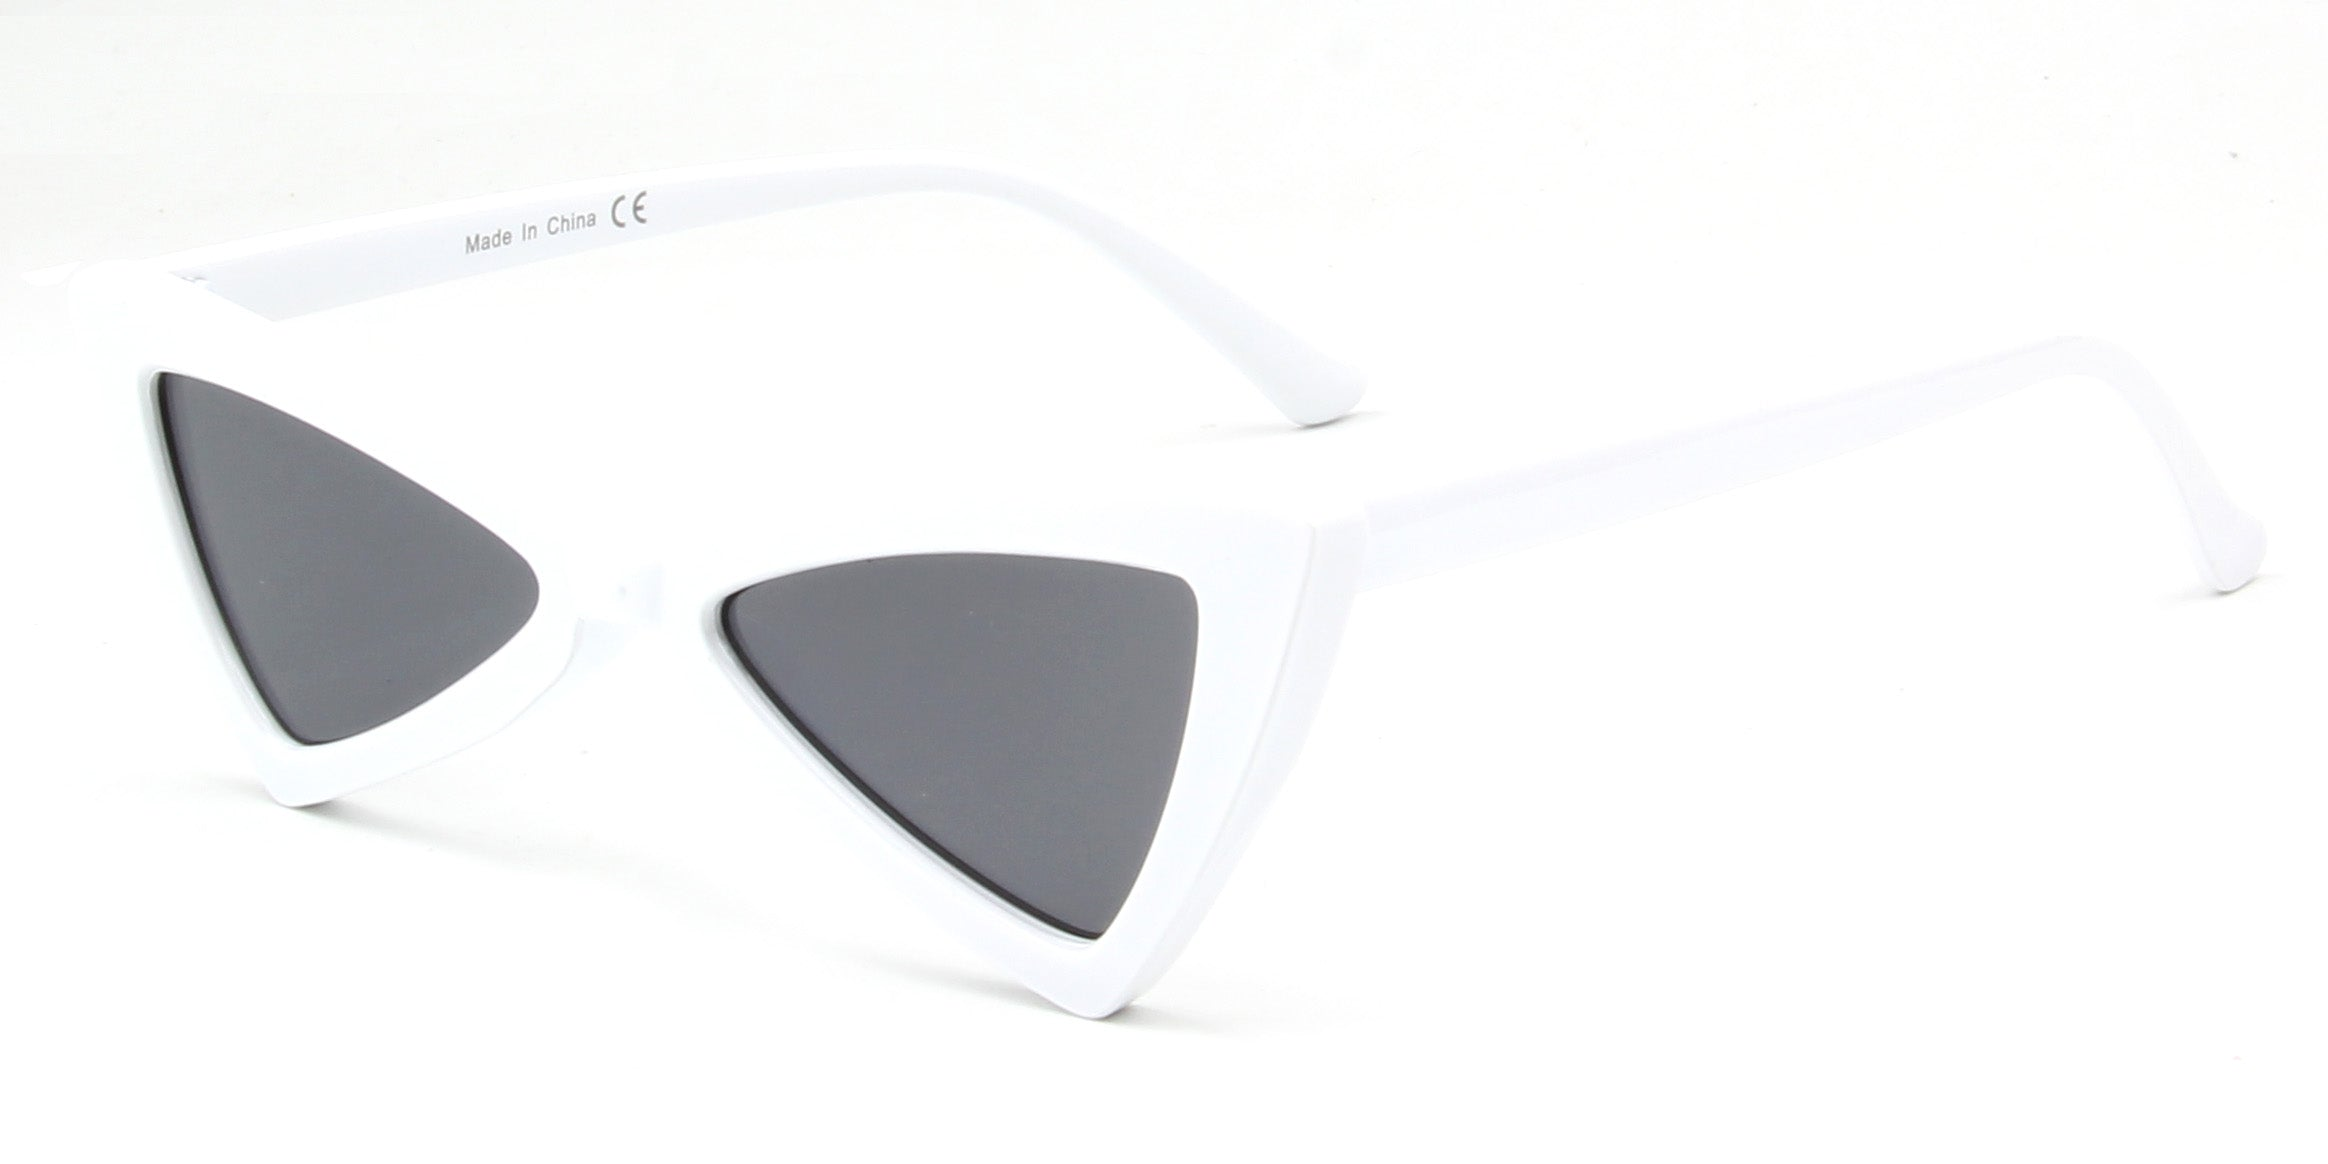 Hailey - Sunglasses Akcessoryz